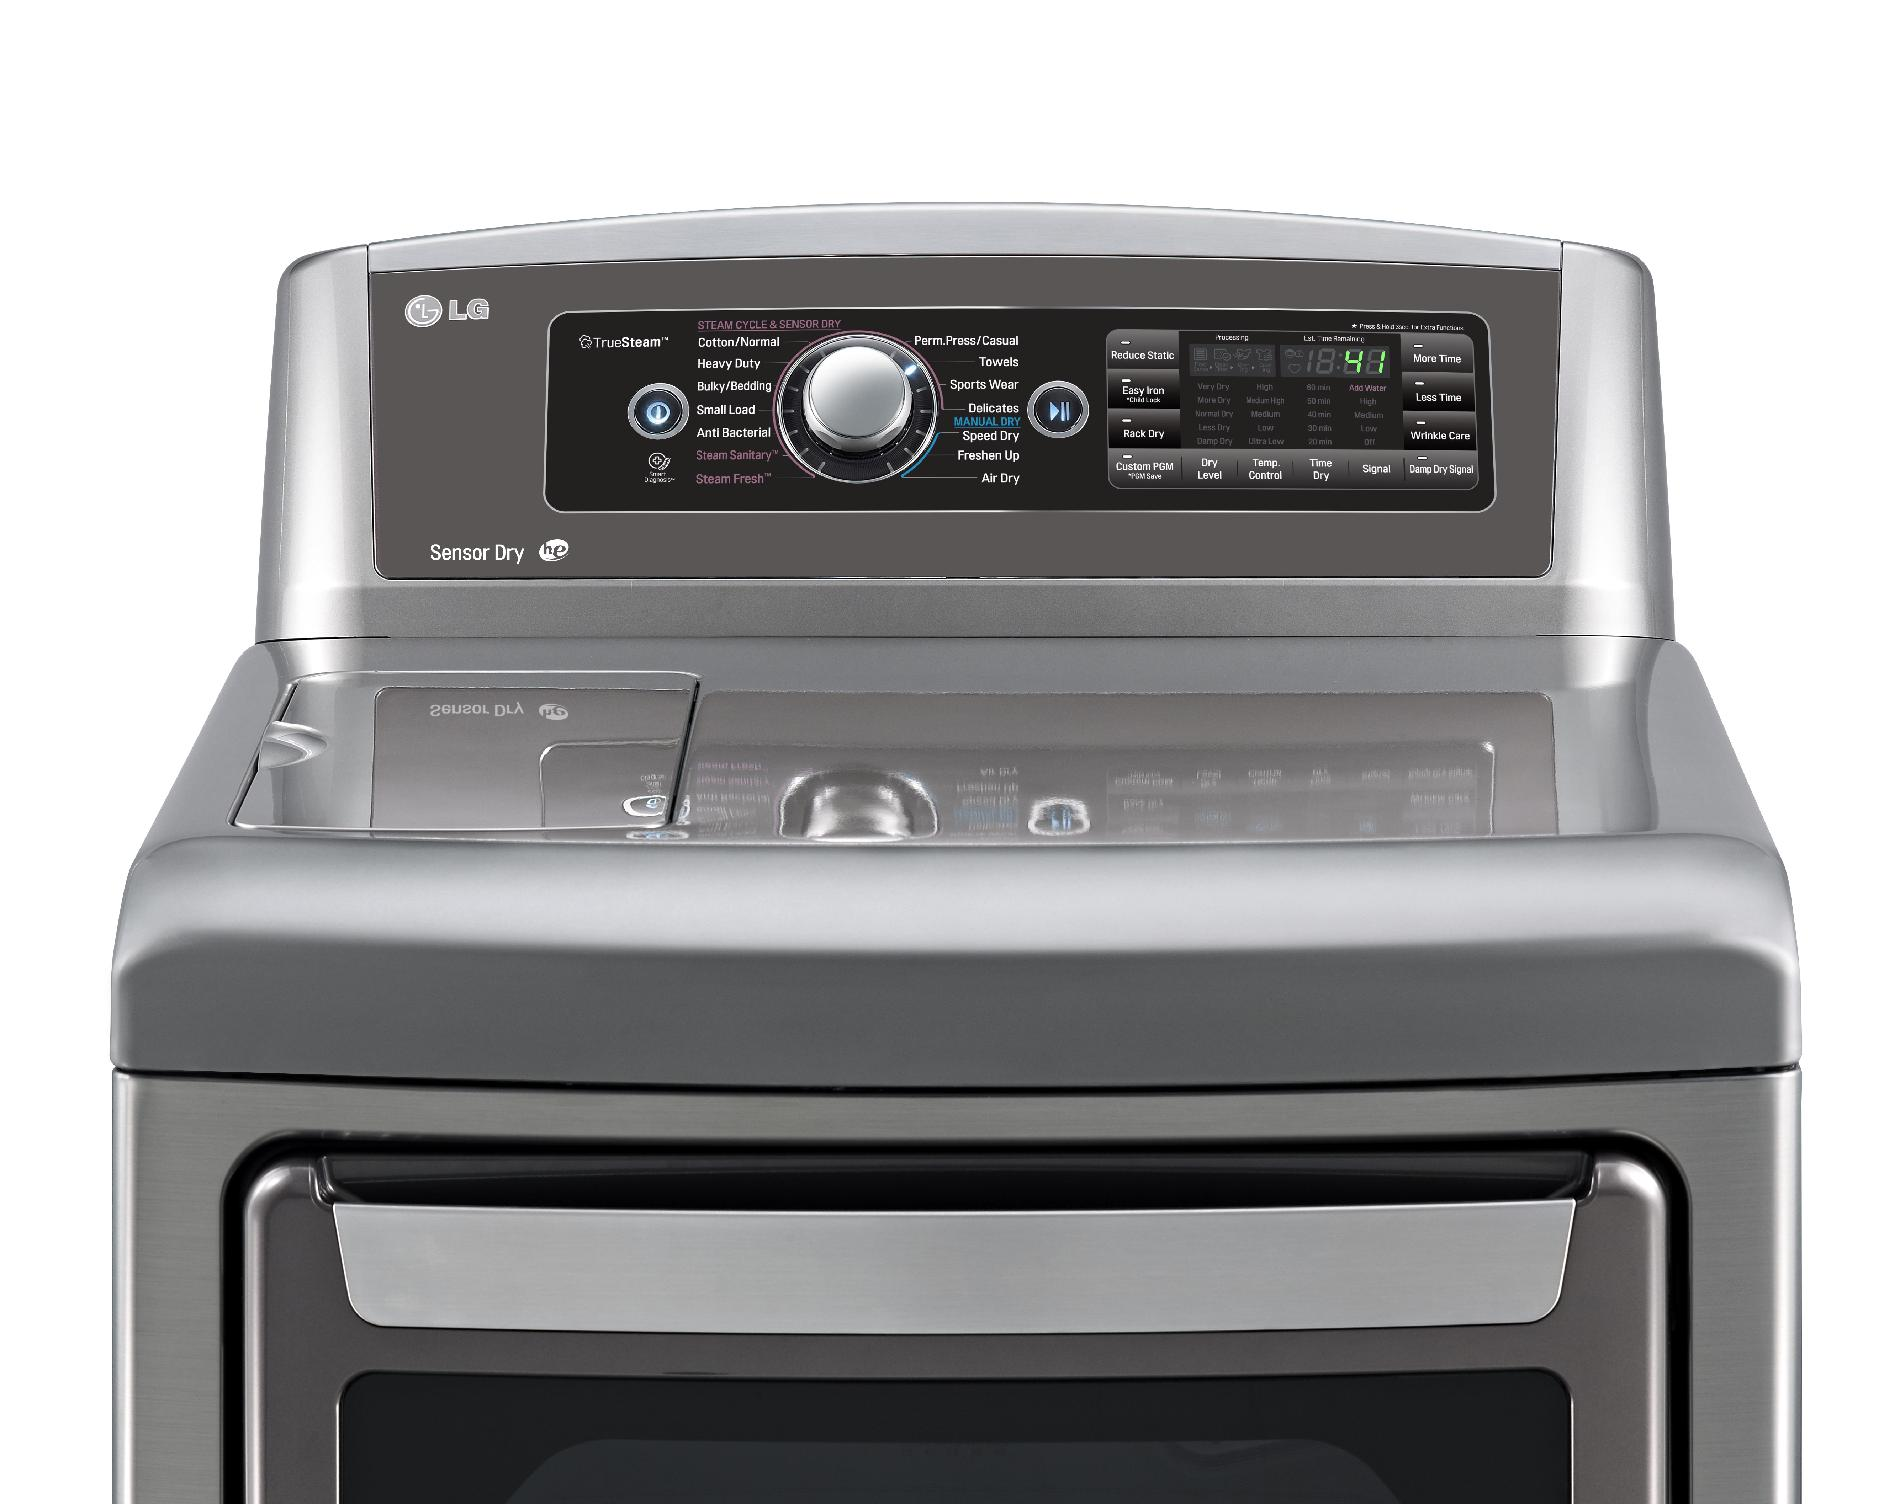 LG 7.3 cu. ft. Gas Dryer w/ SteamSanitary™ - Graphite Steel